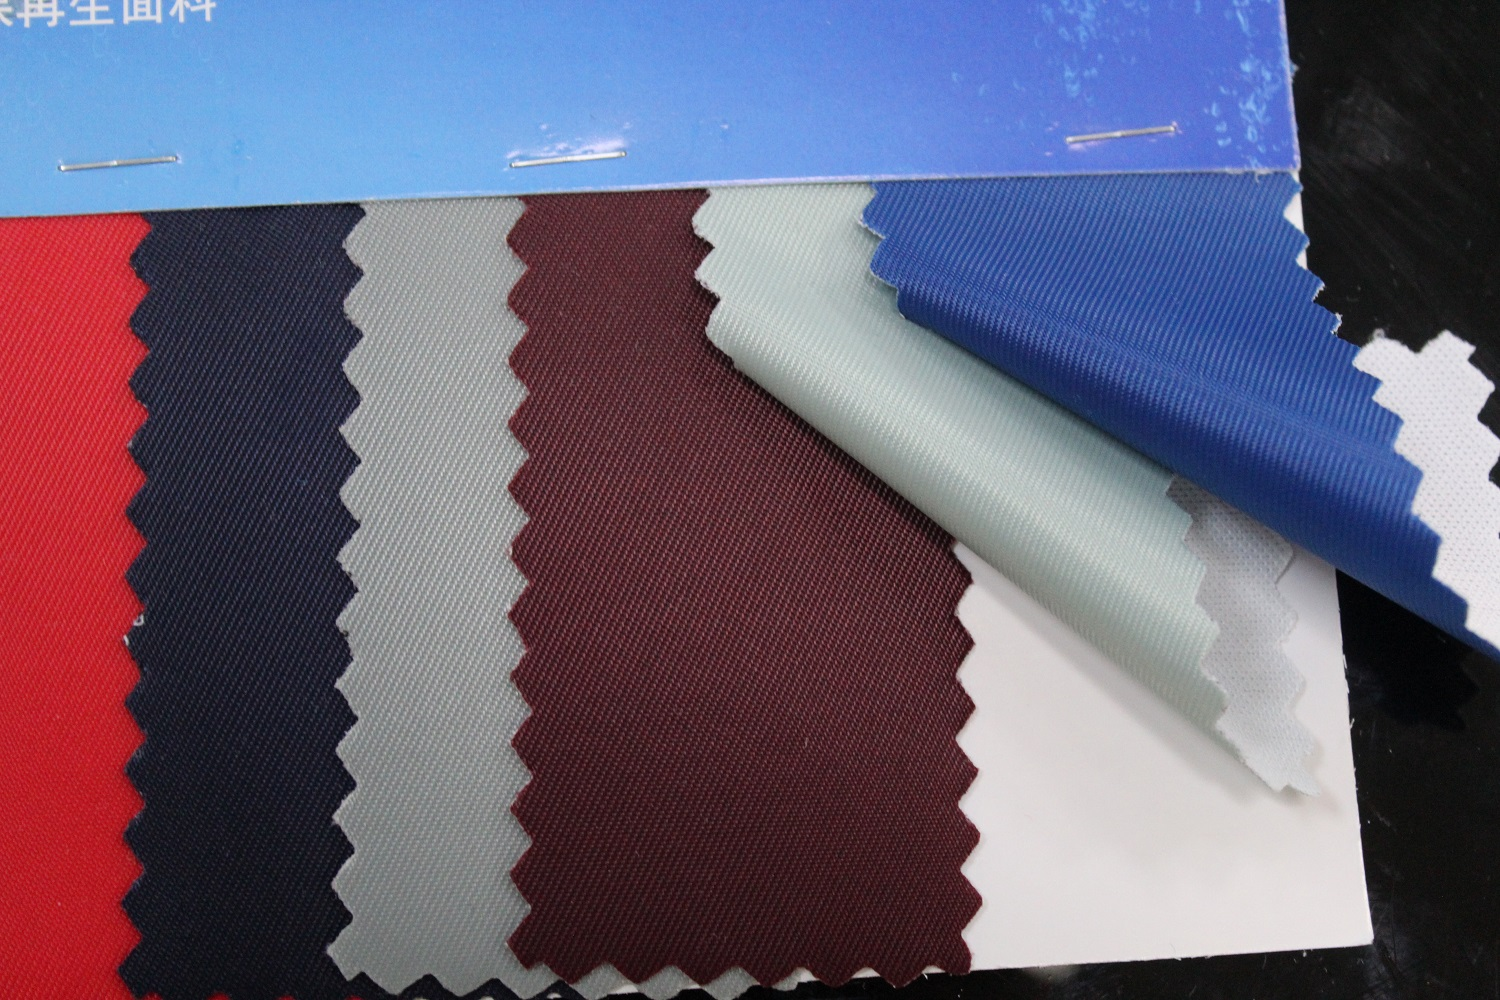 high quality 272 twill composite fabric